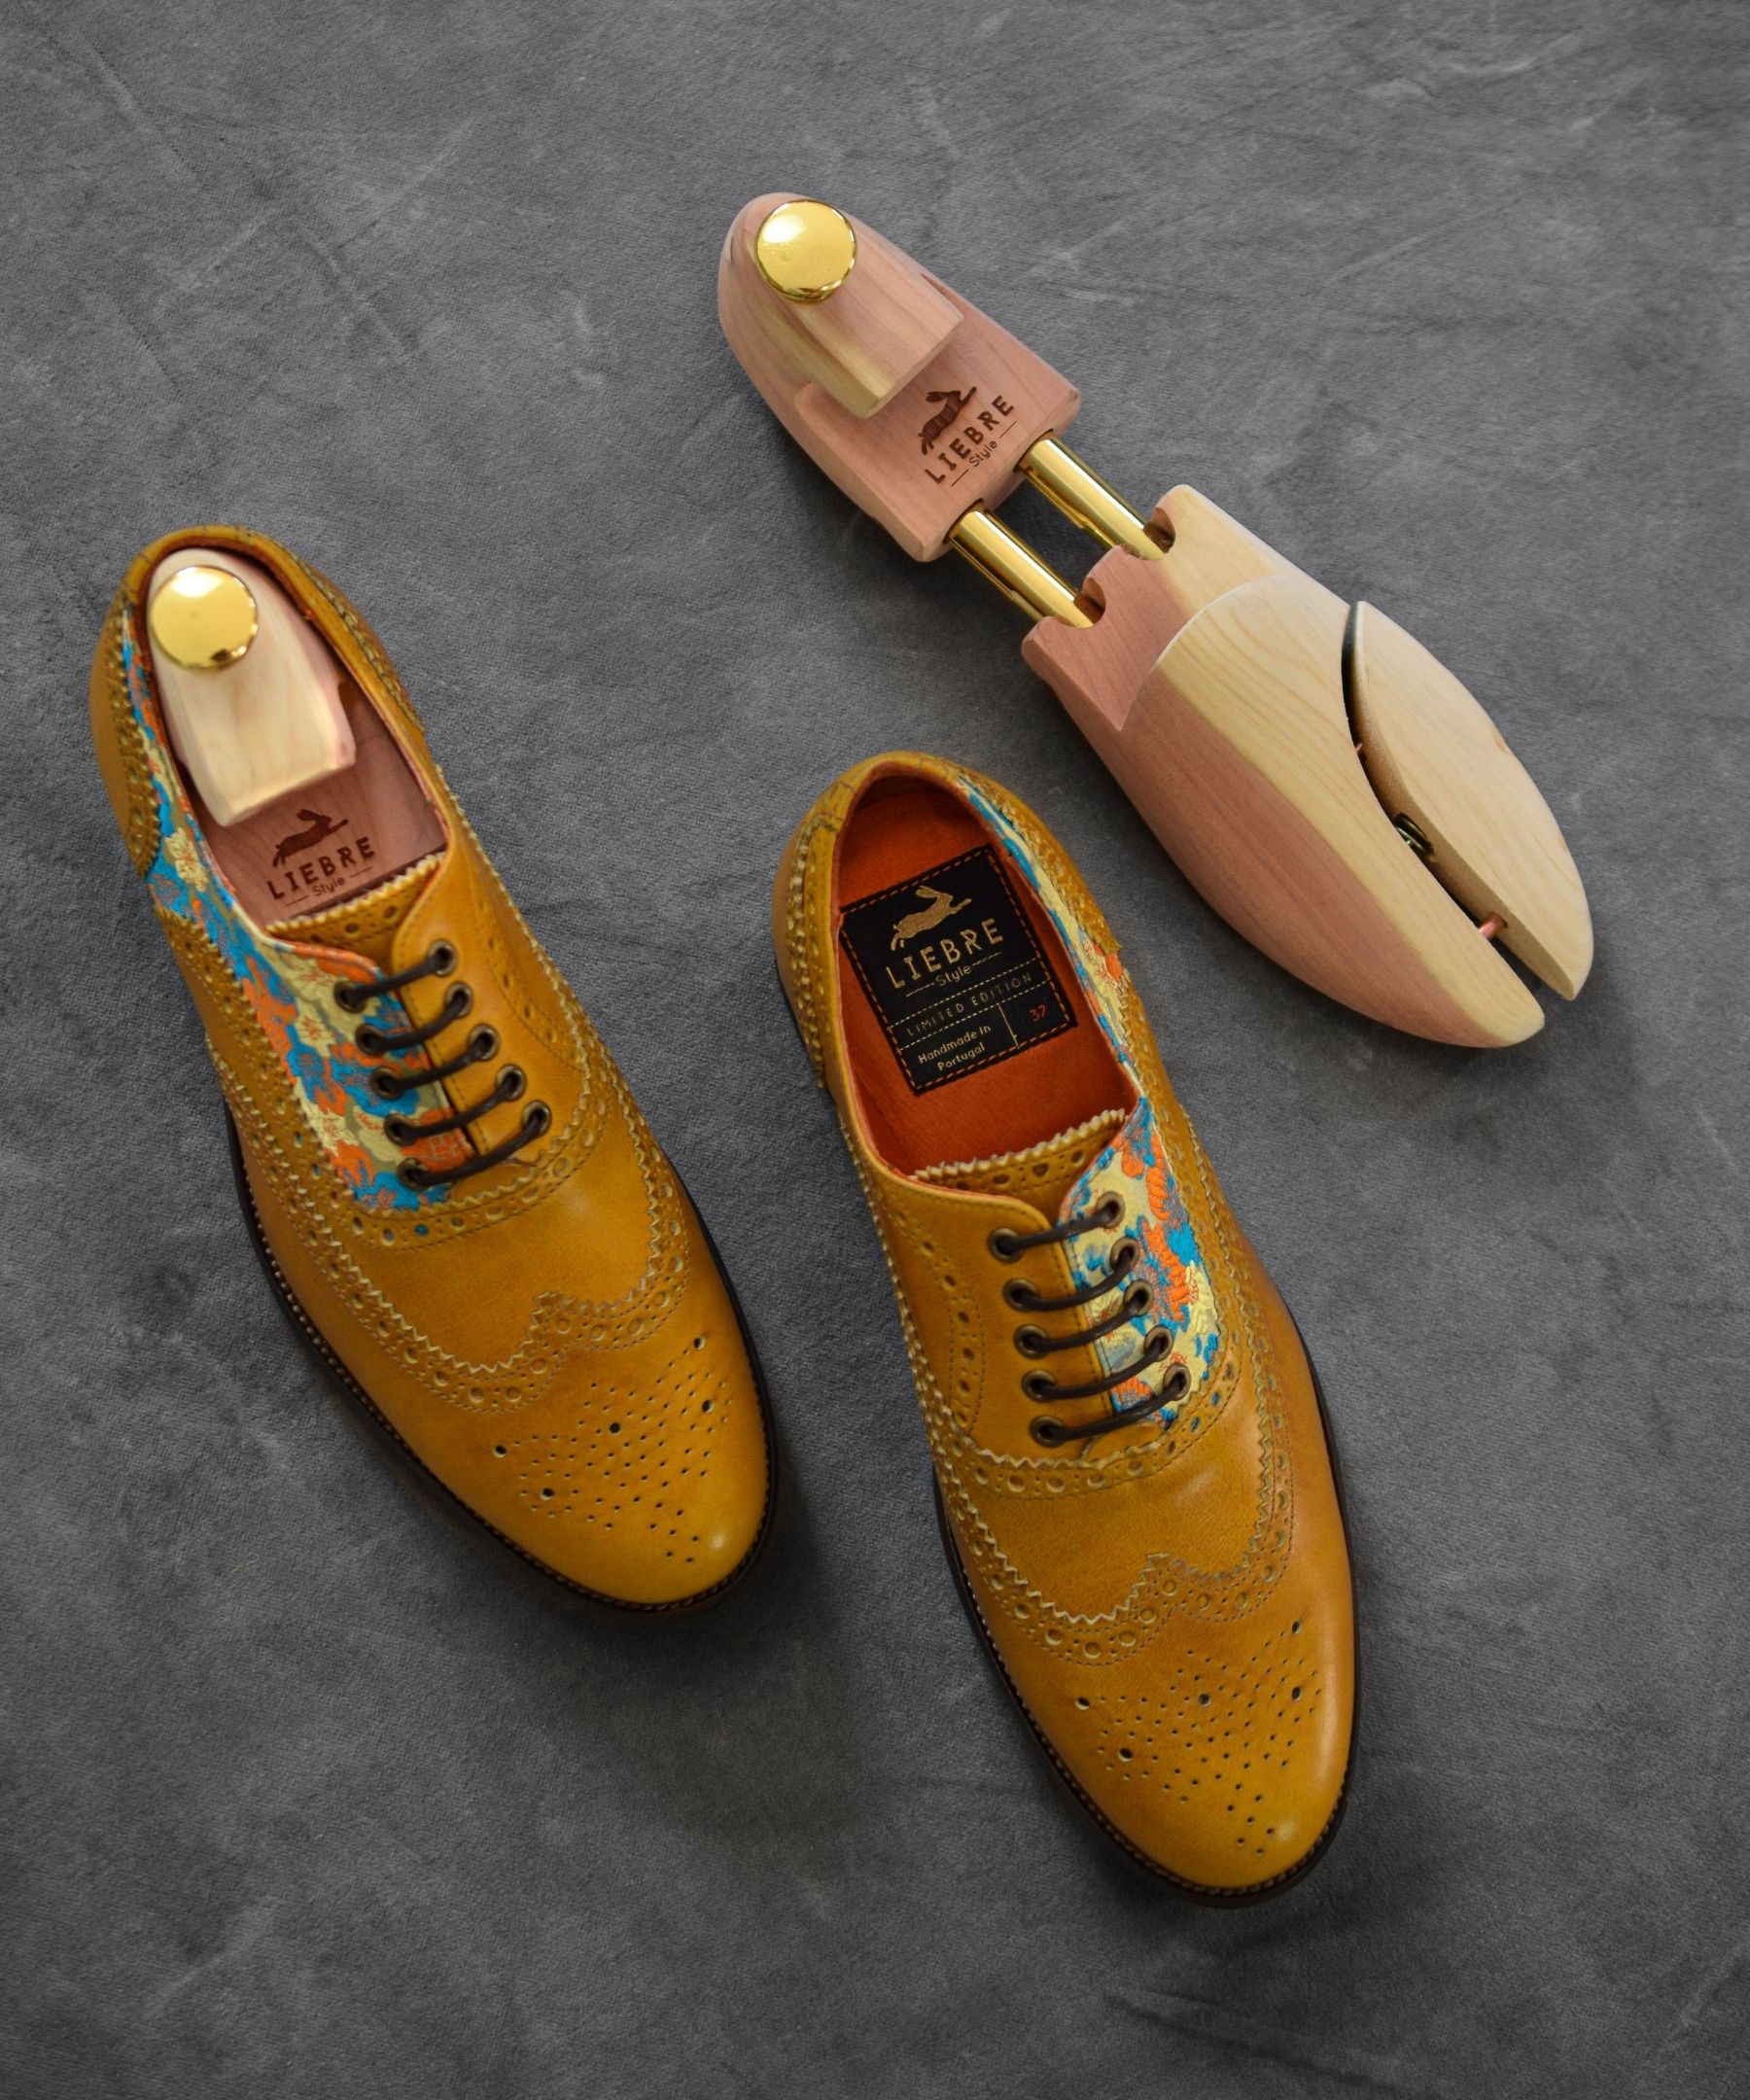 caramel liebre style oxford shoes and shoe tree in cedar wood